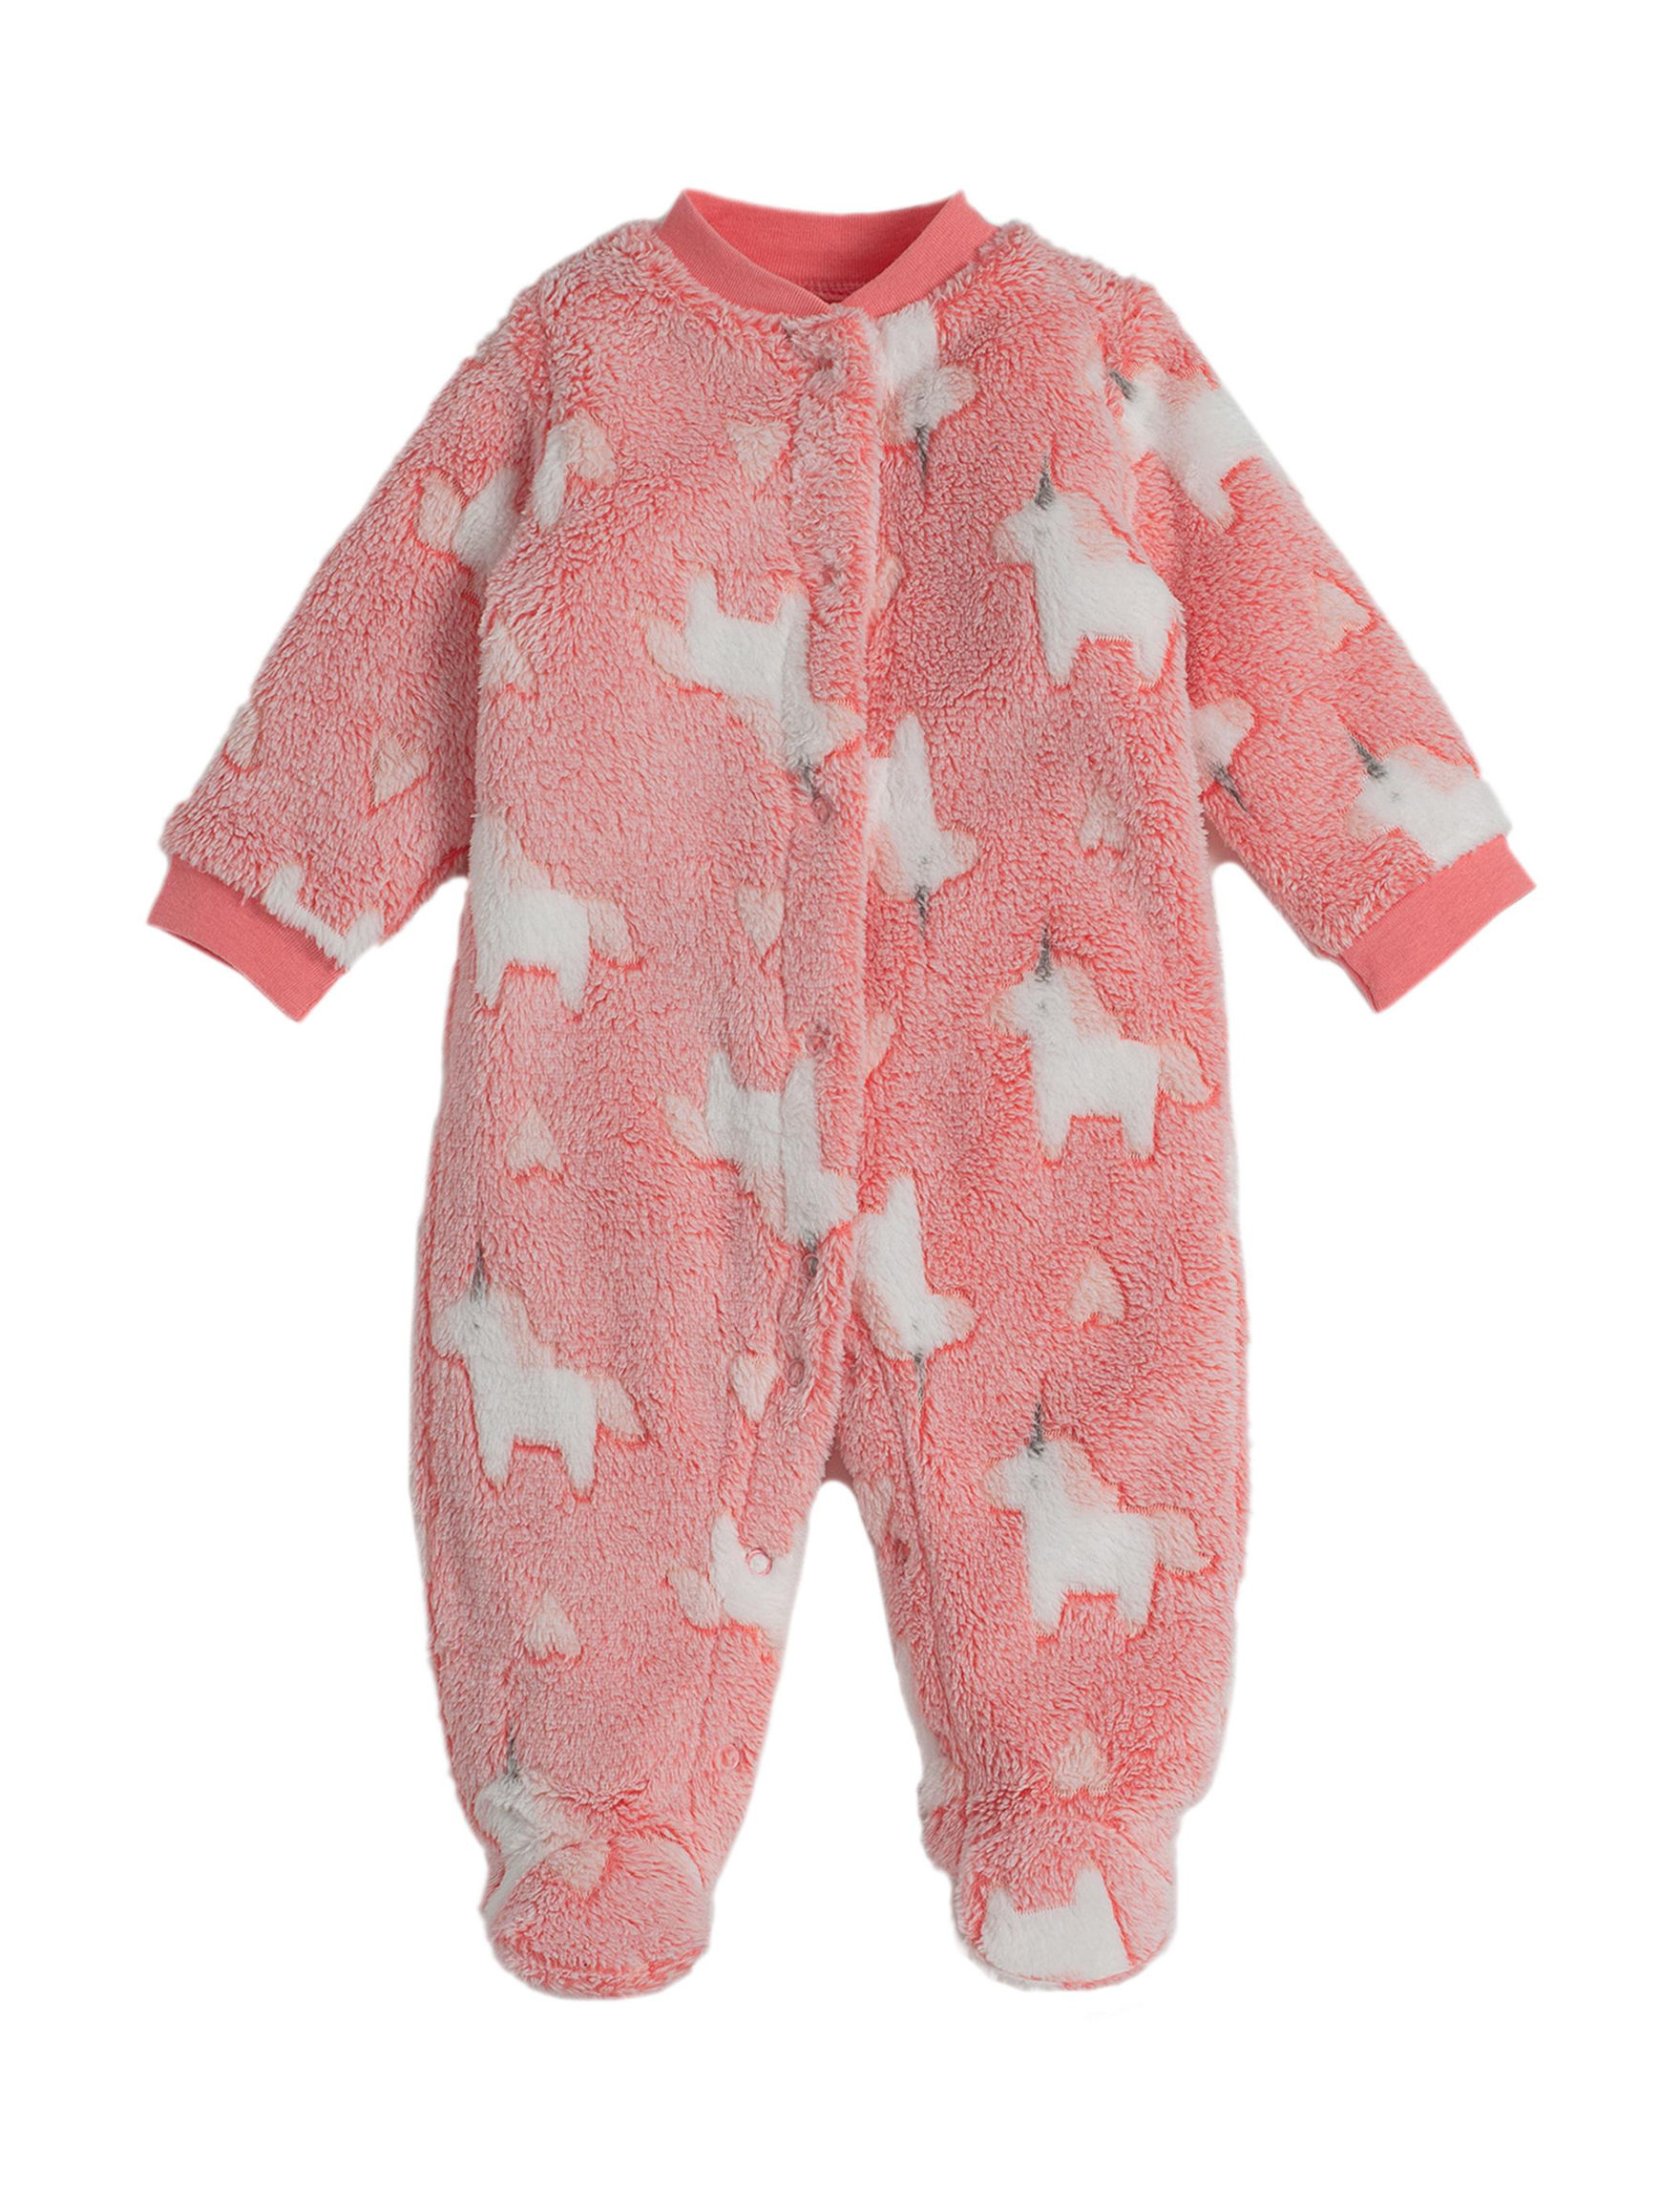 Baby Gear Coral / White